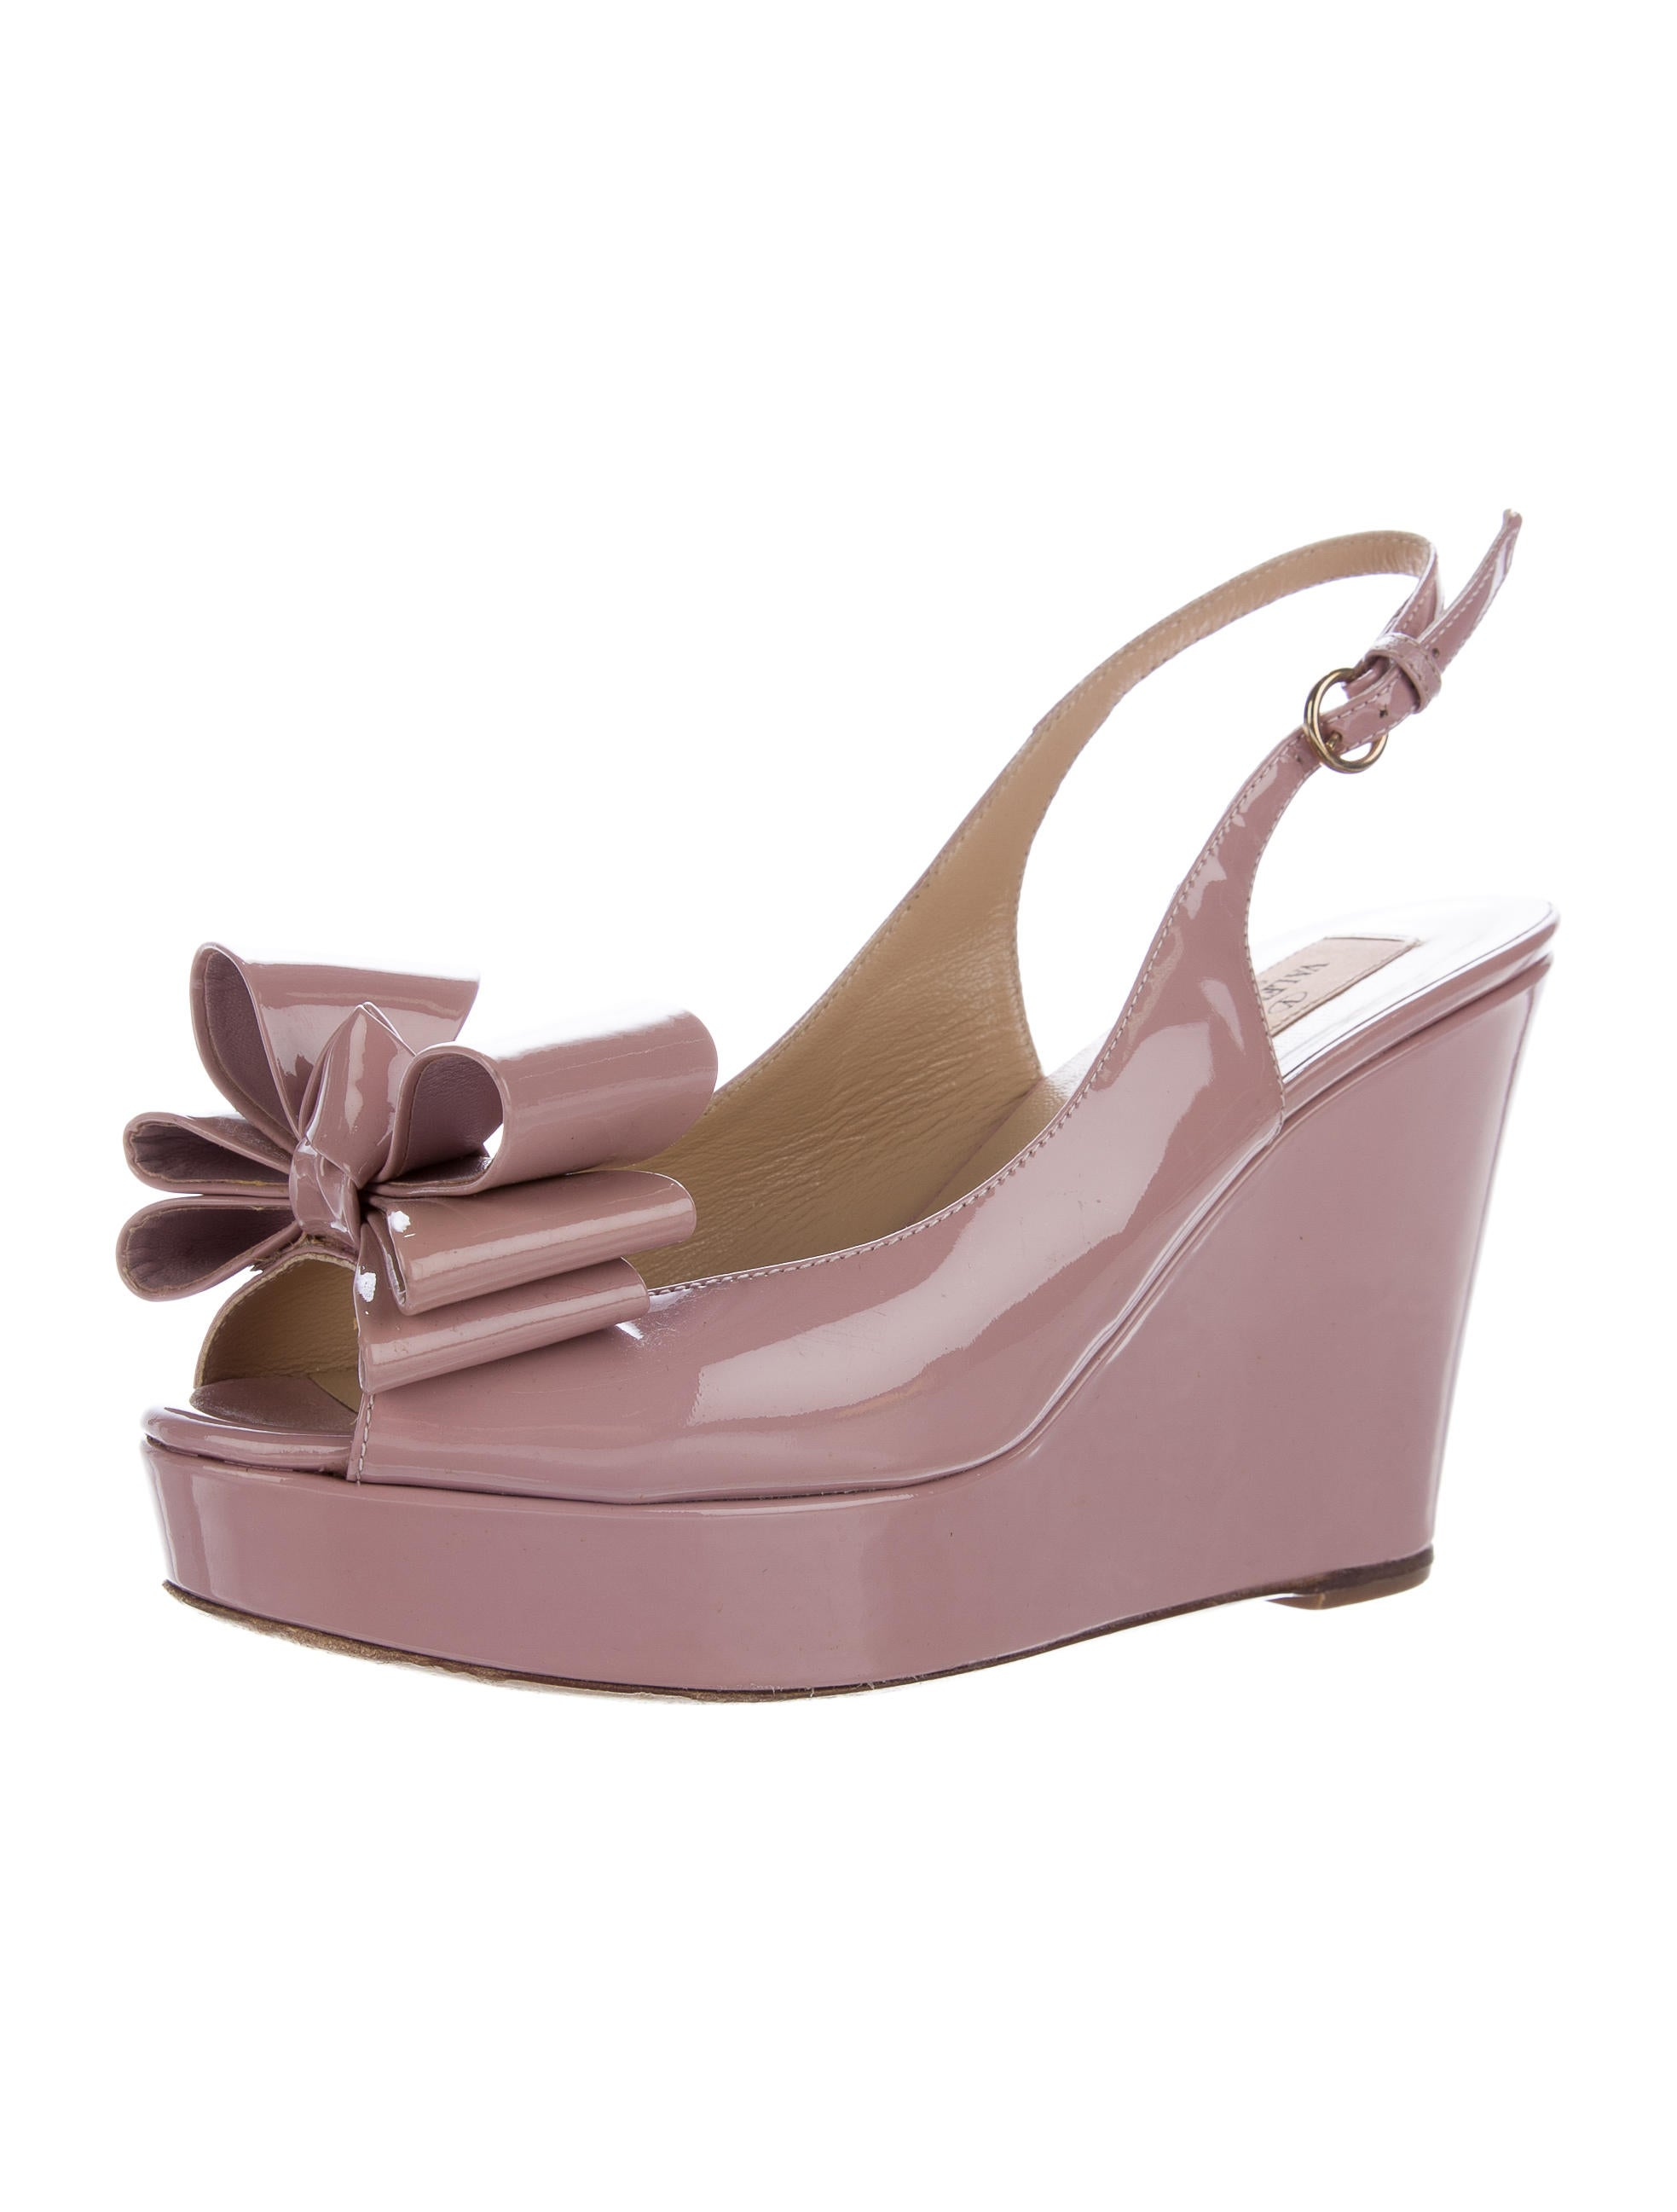 Valentino Patent Leather Slingback Wedge Shoes